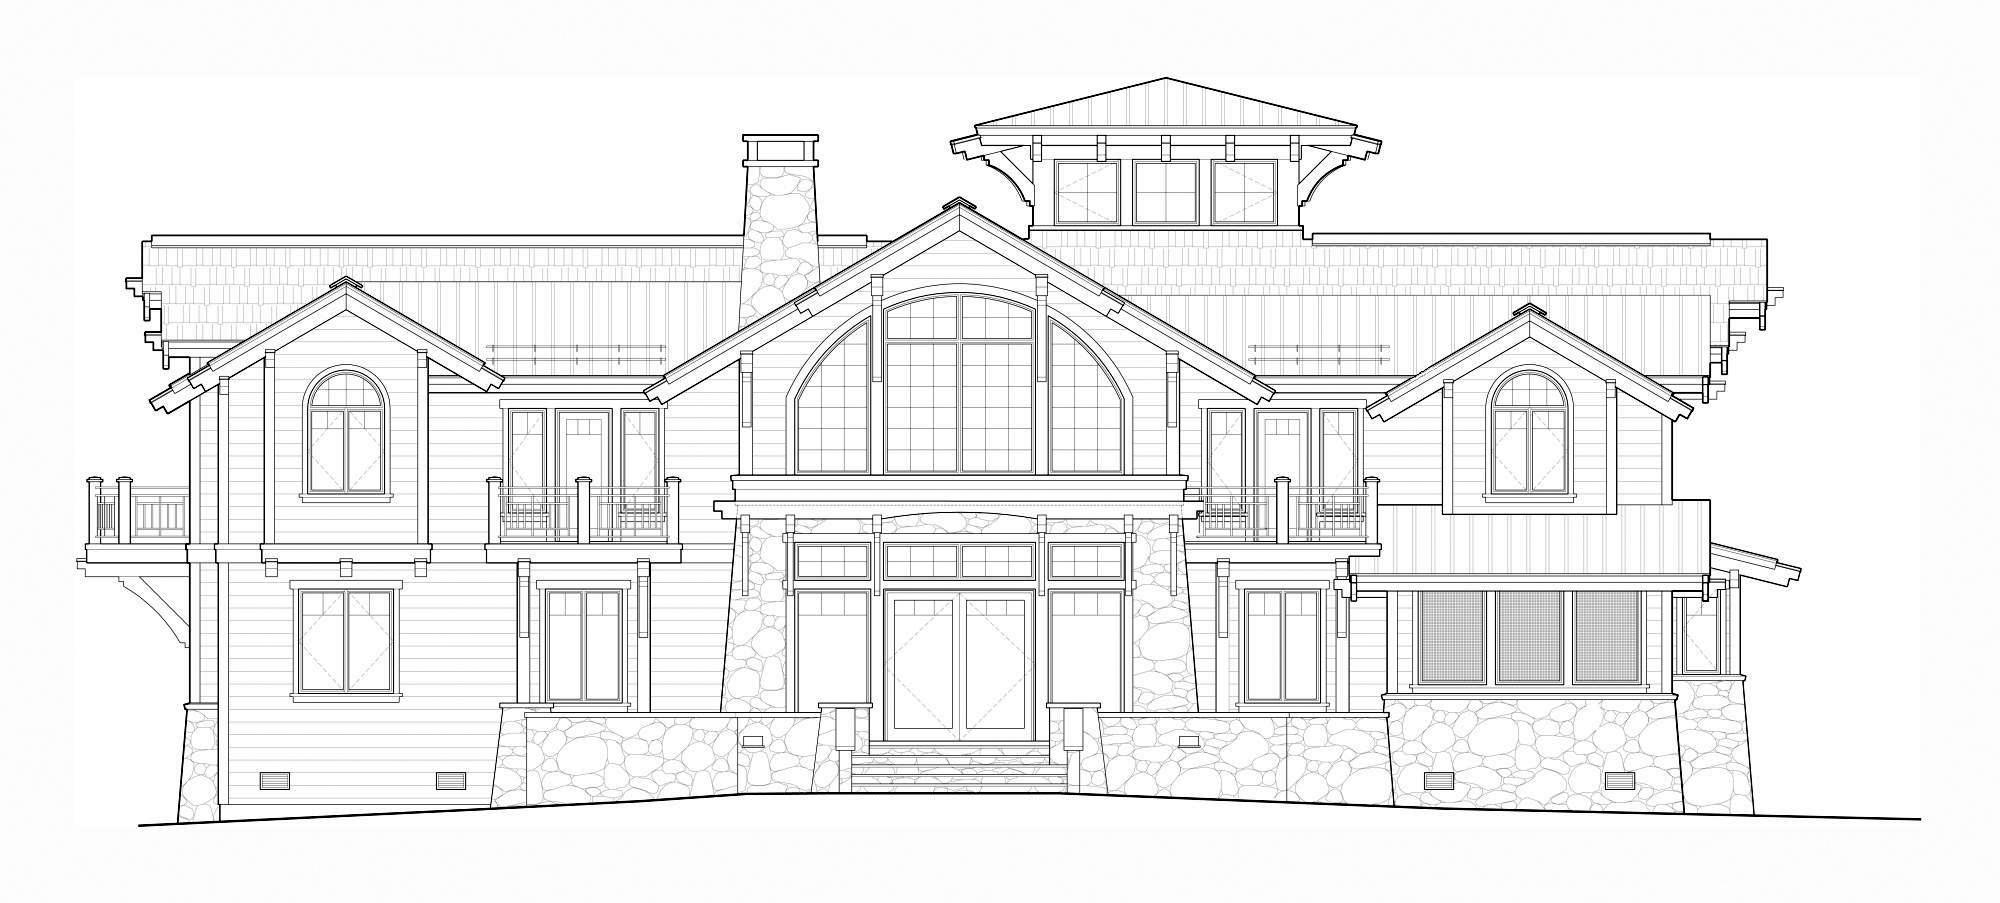 Front Elevation Autocad : Idaho mountain architects hendricks architecture